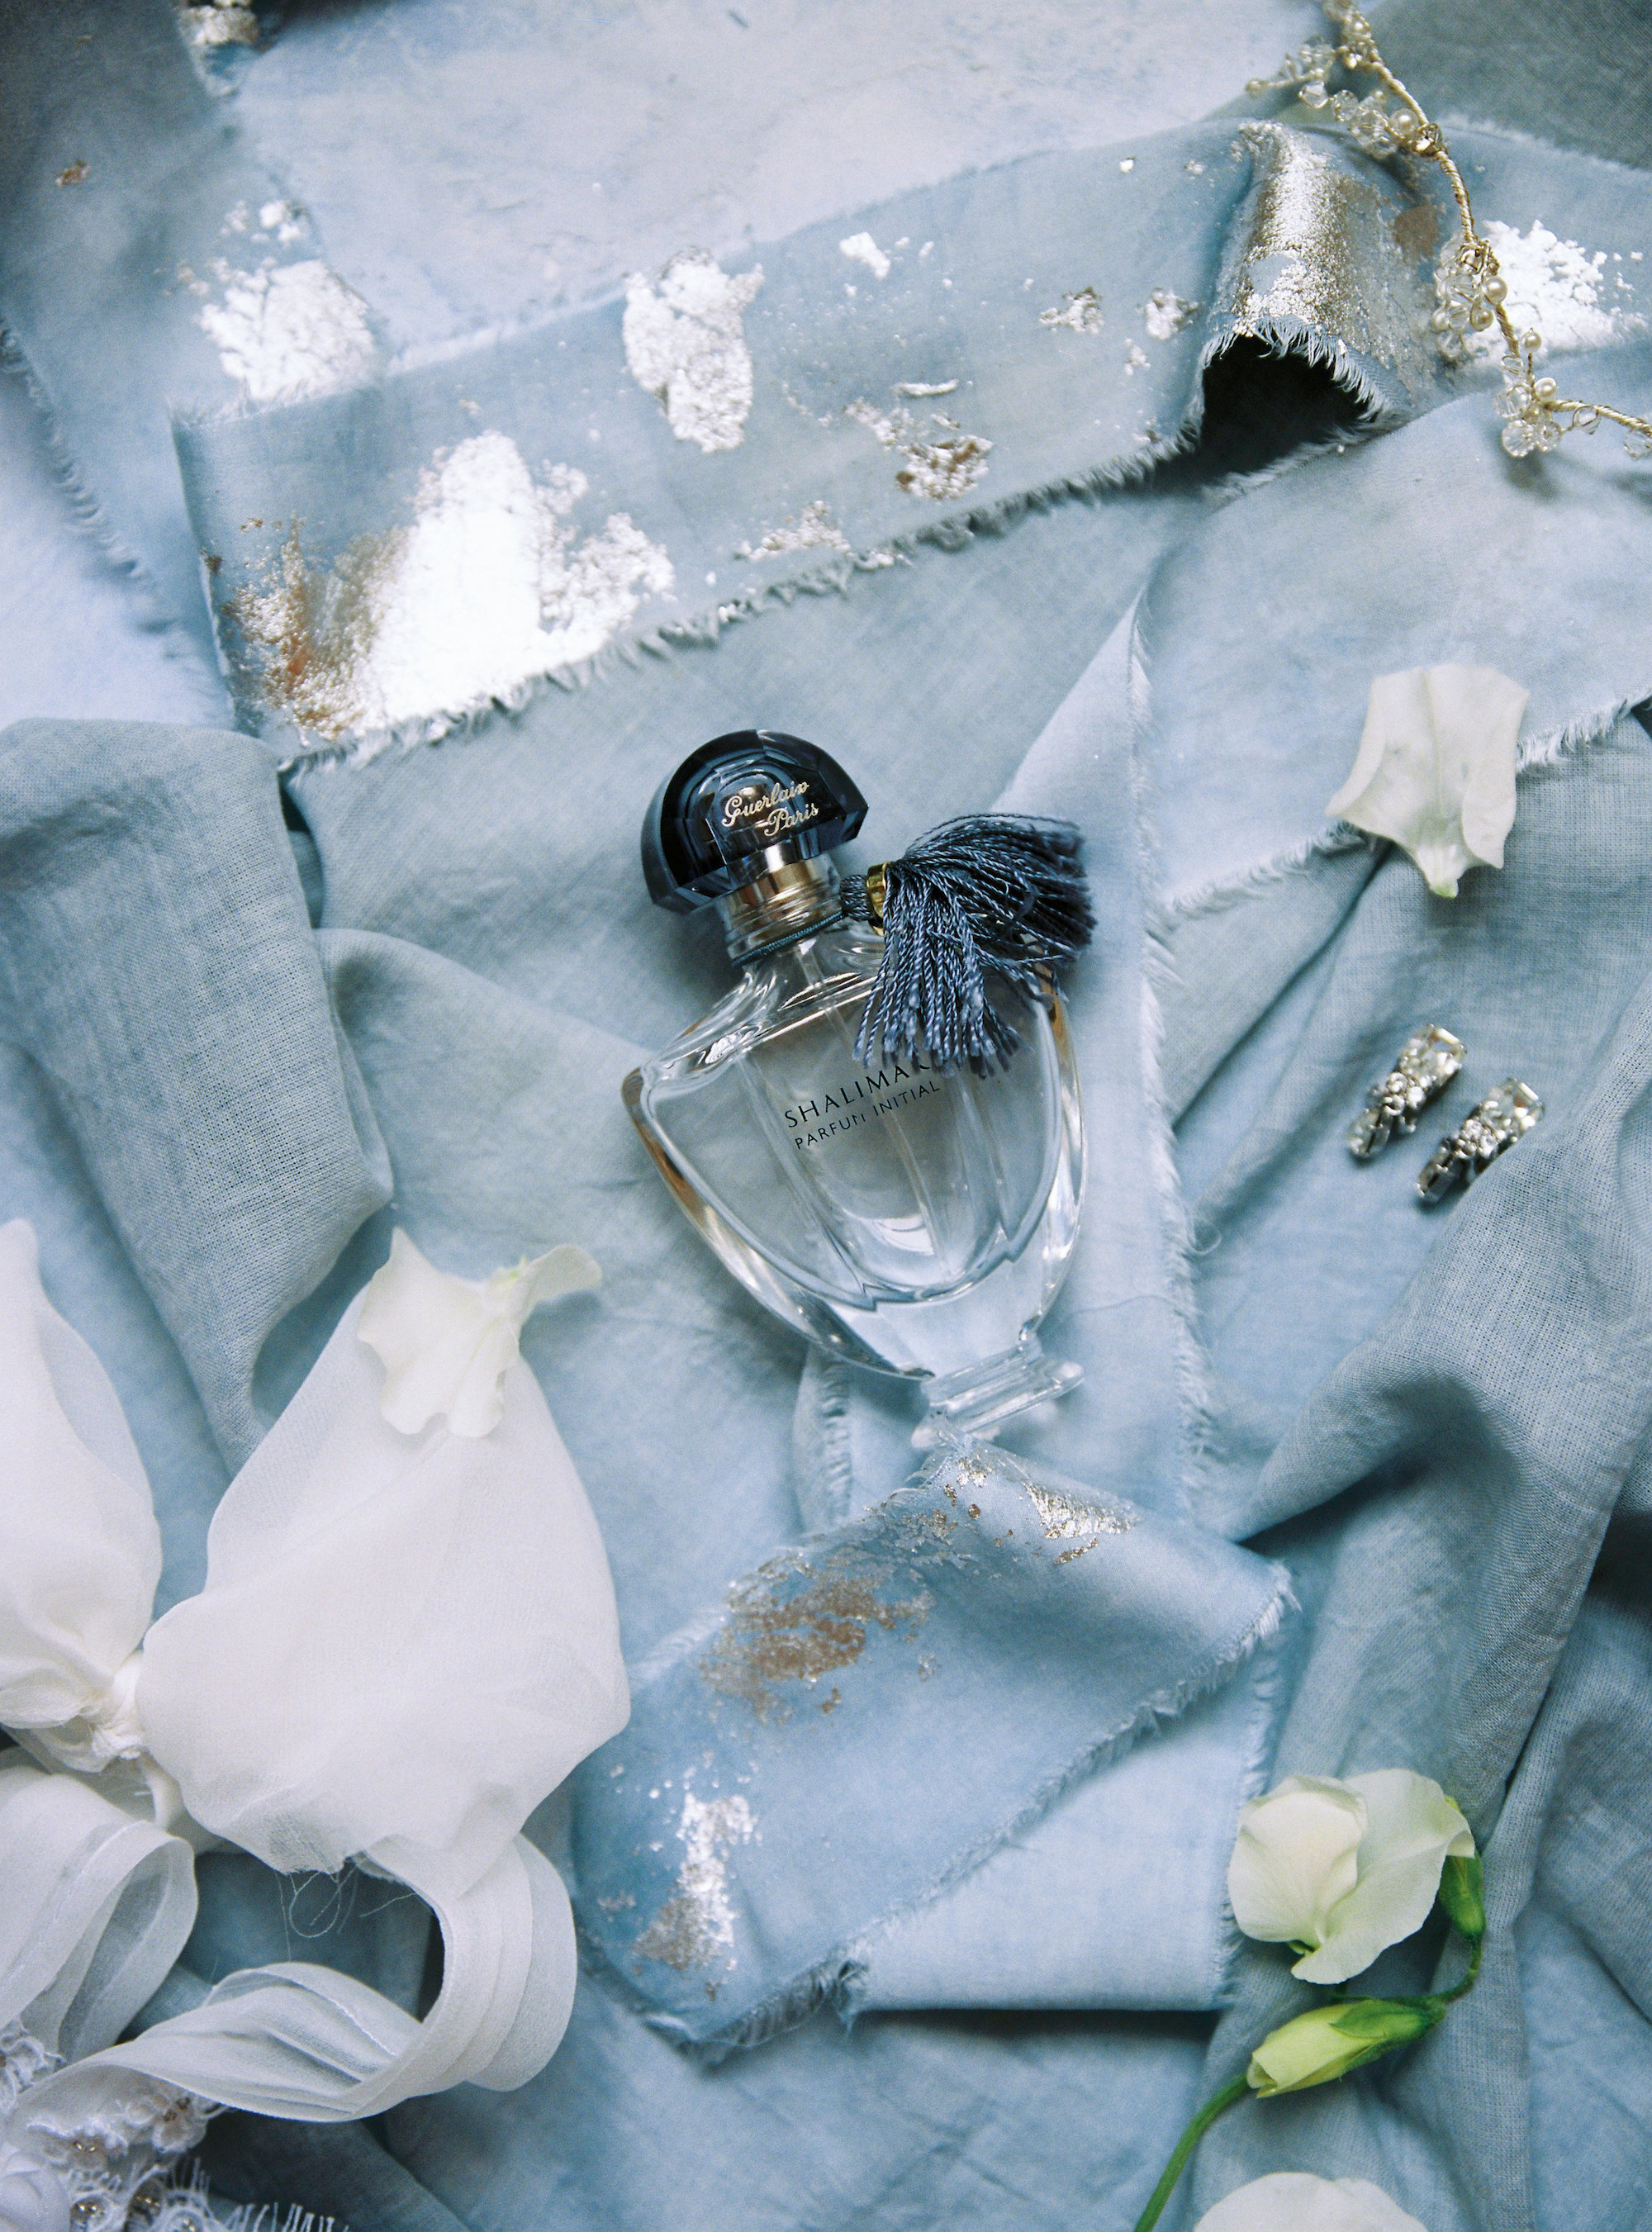 Luxury Wedding Planner UK | A Timeless English Inspired Editorial with Georgian Blue | Cotswolds Wedding White and Silver Toned Green Neutral Tones | The Royal Crescent Hotel Bath | Alexander J Collins Photography .27 .jpg.jpg